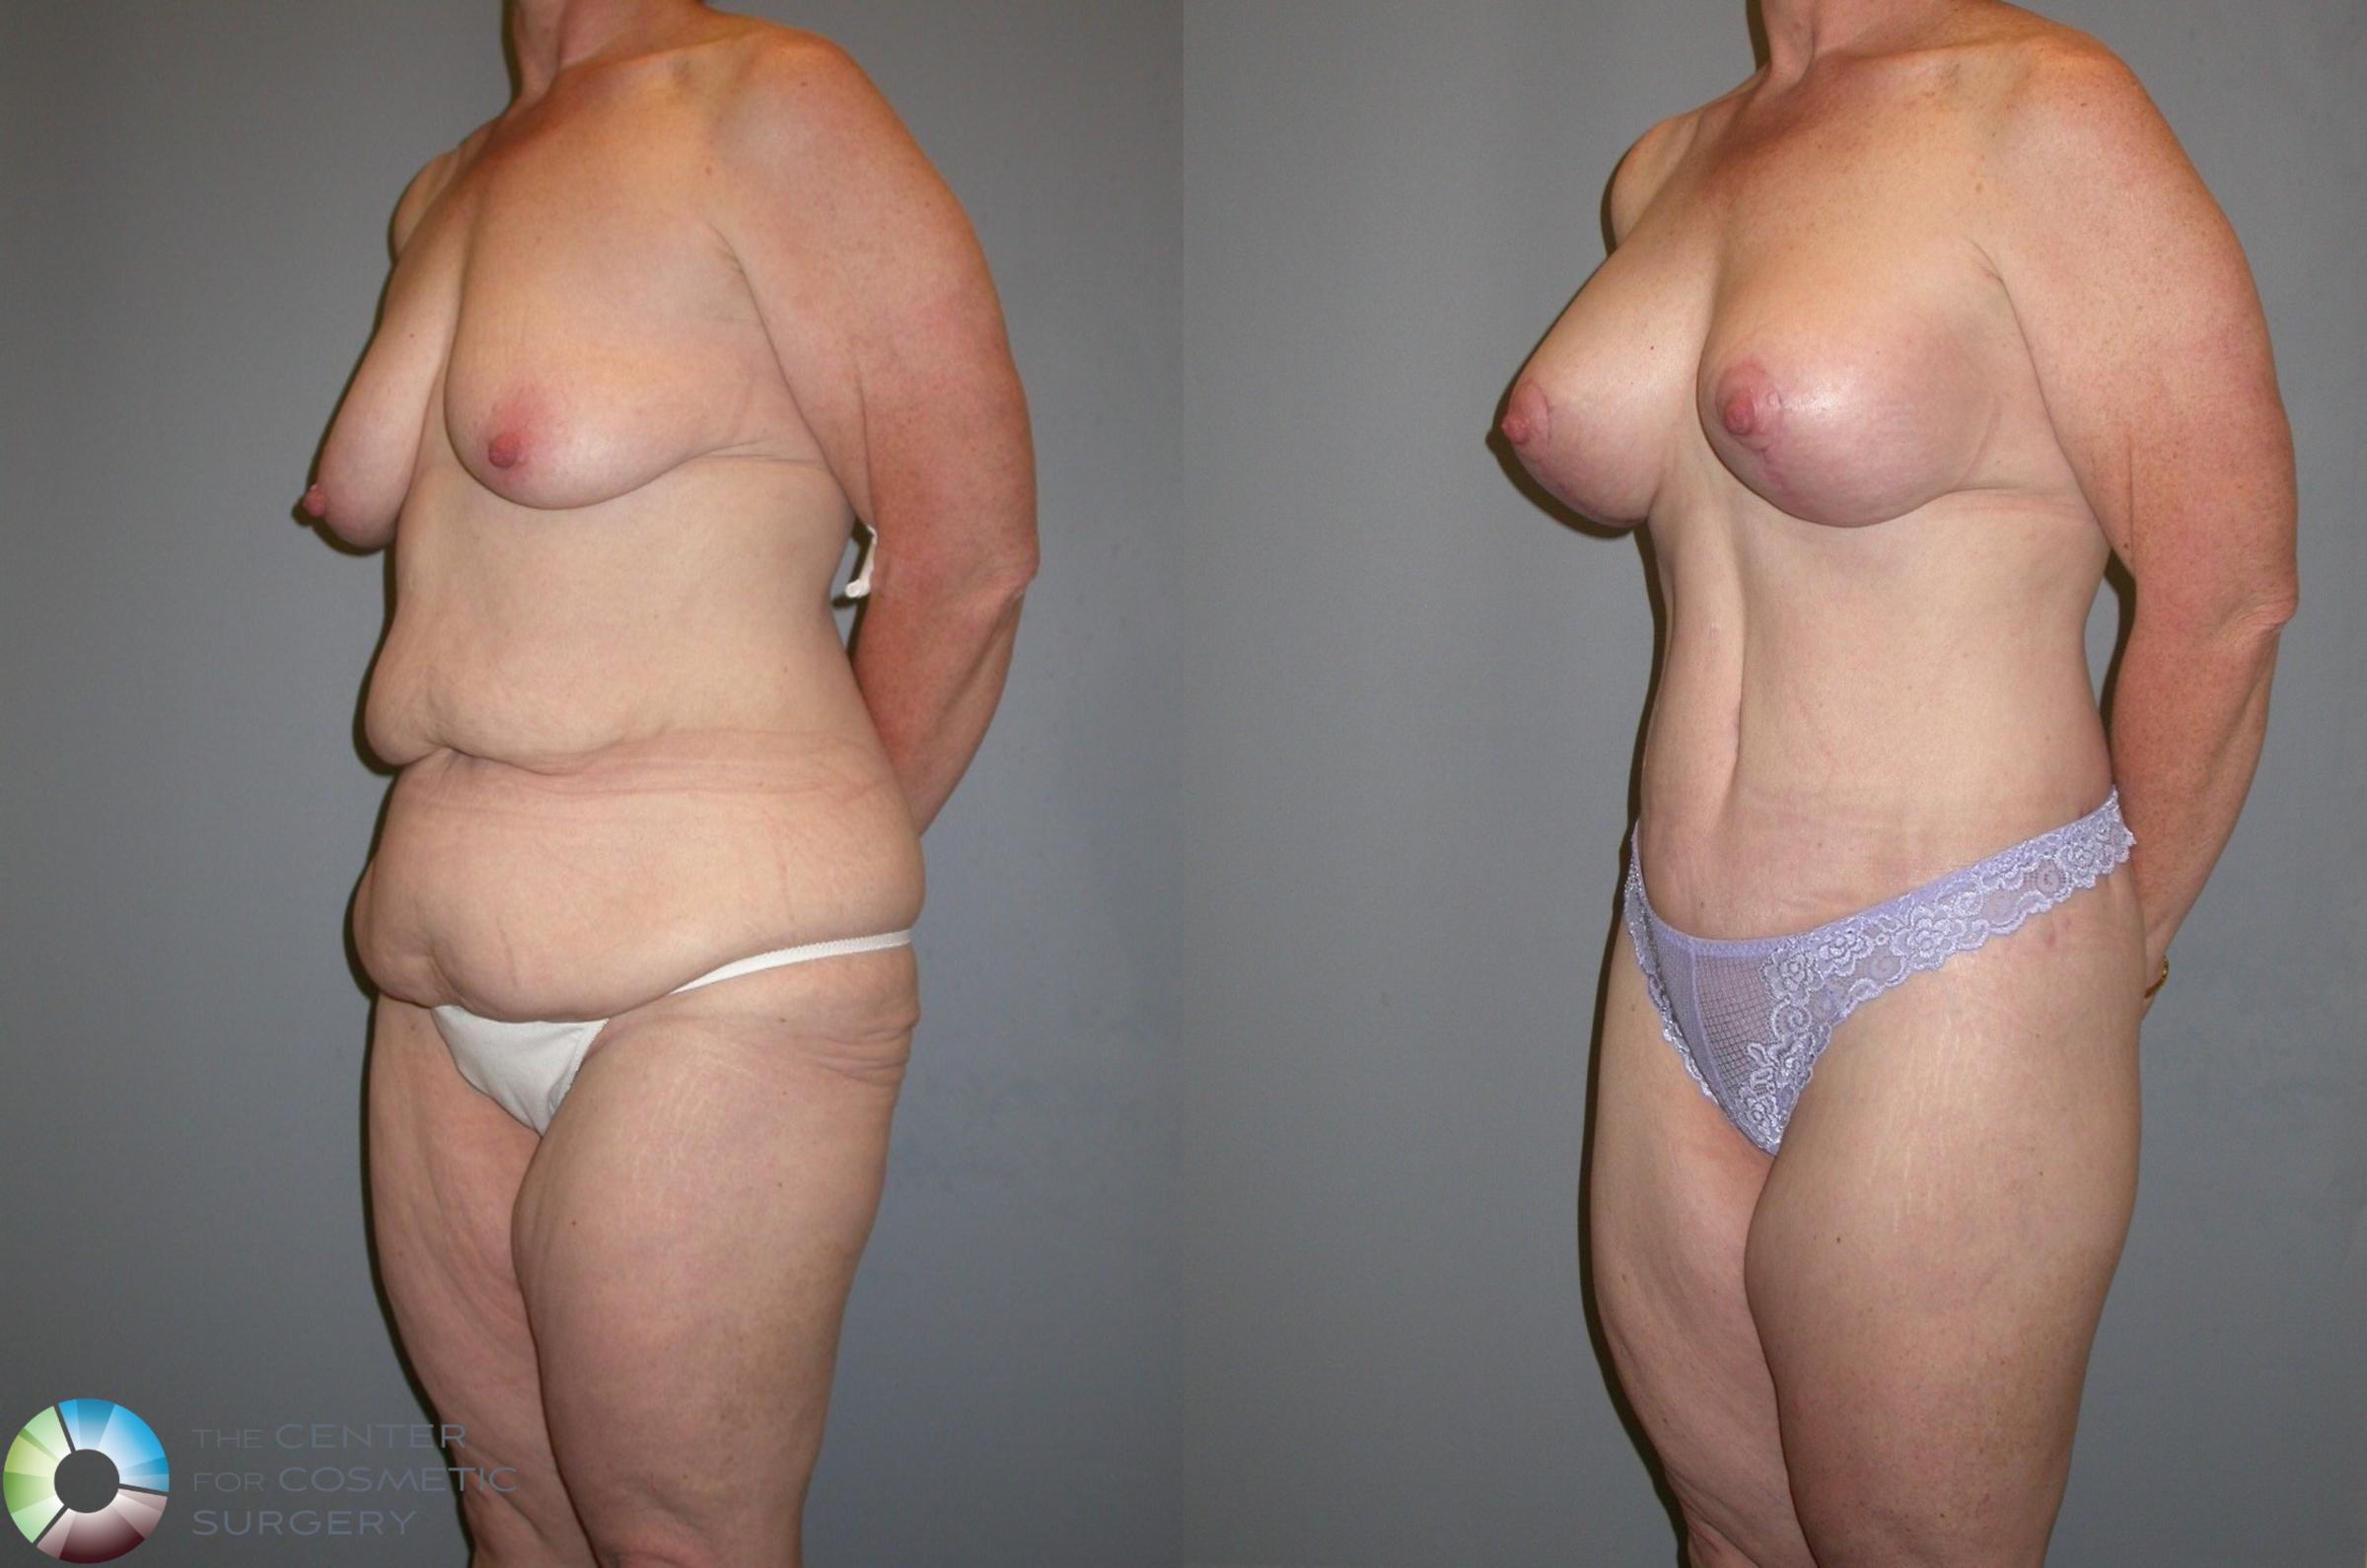 Body Lift Case 105 Before & After View #4 | Golden, CO | The Center for Cosmetic Surgery